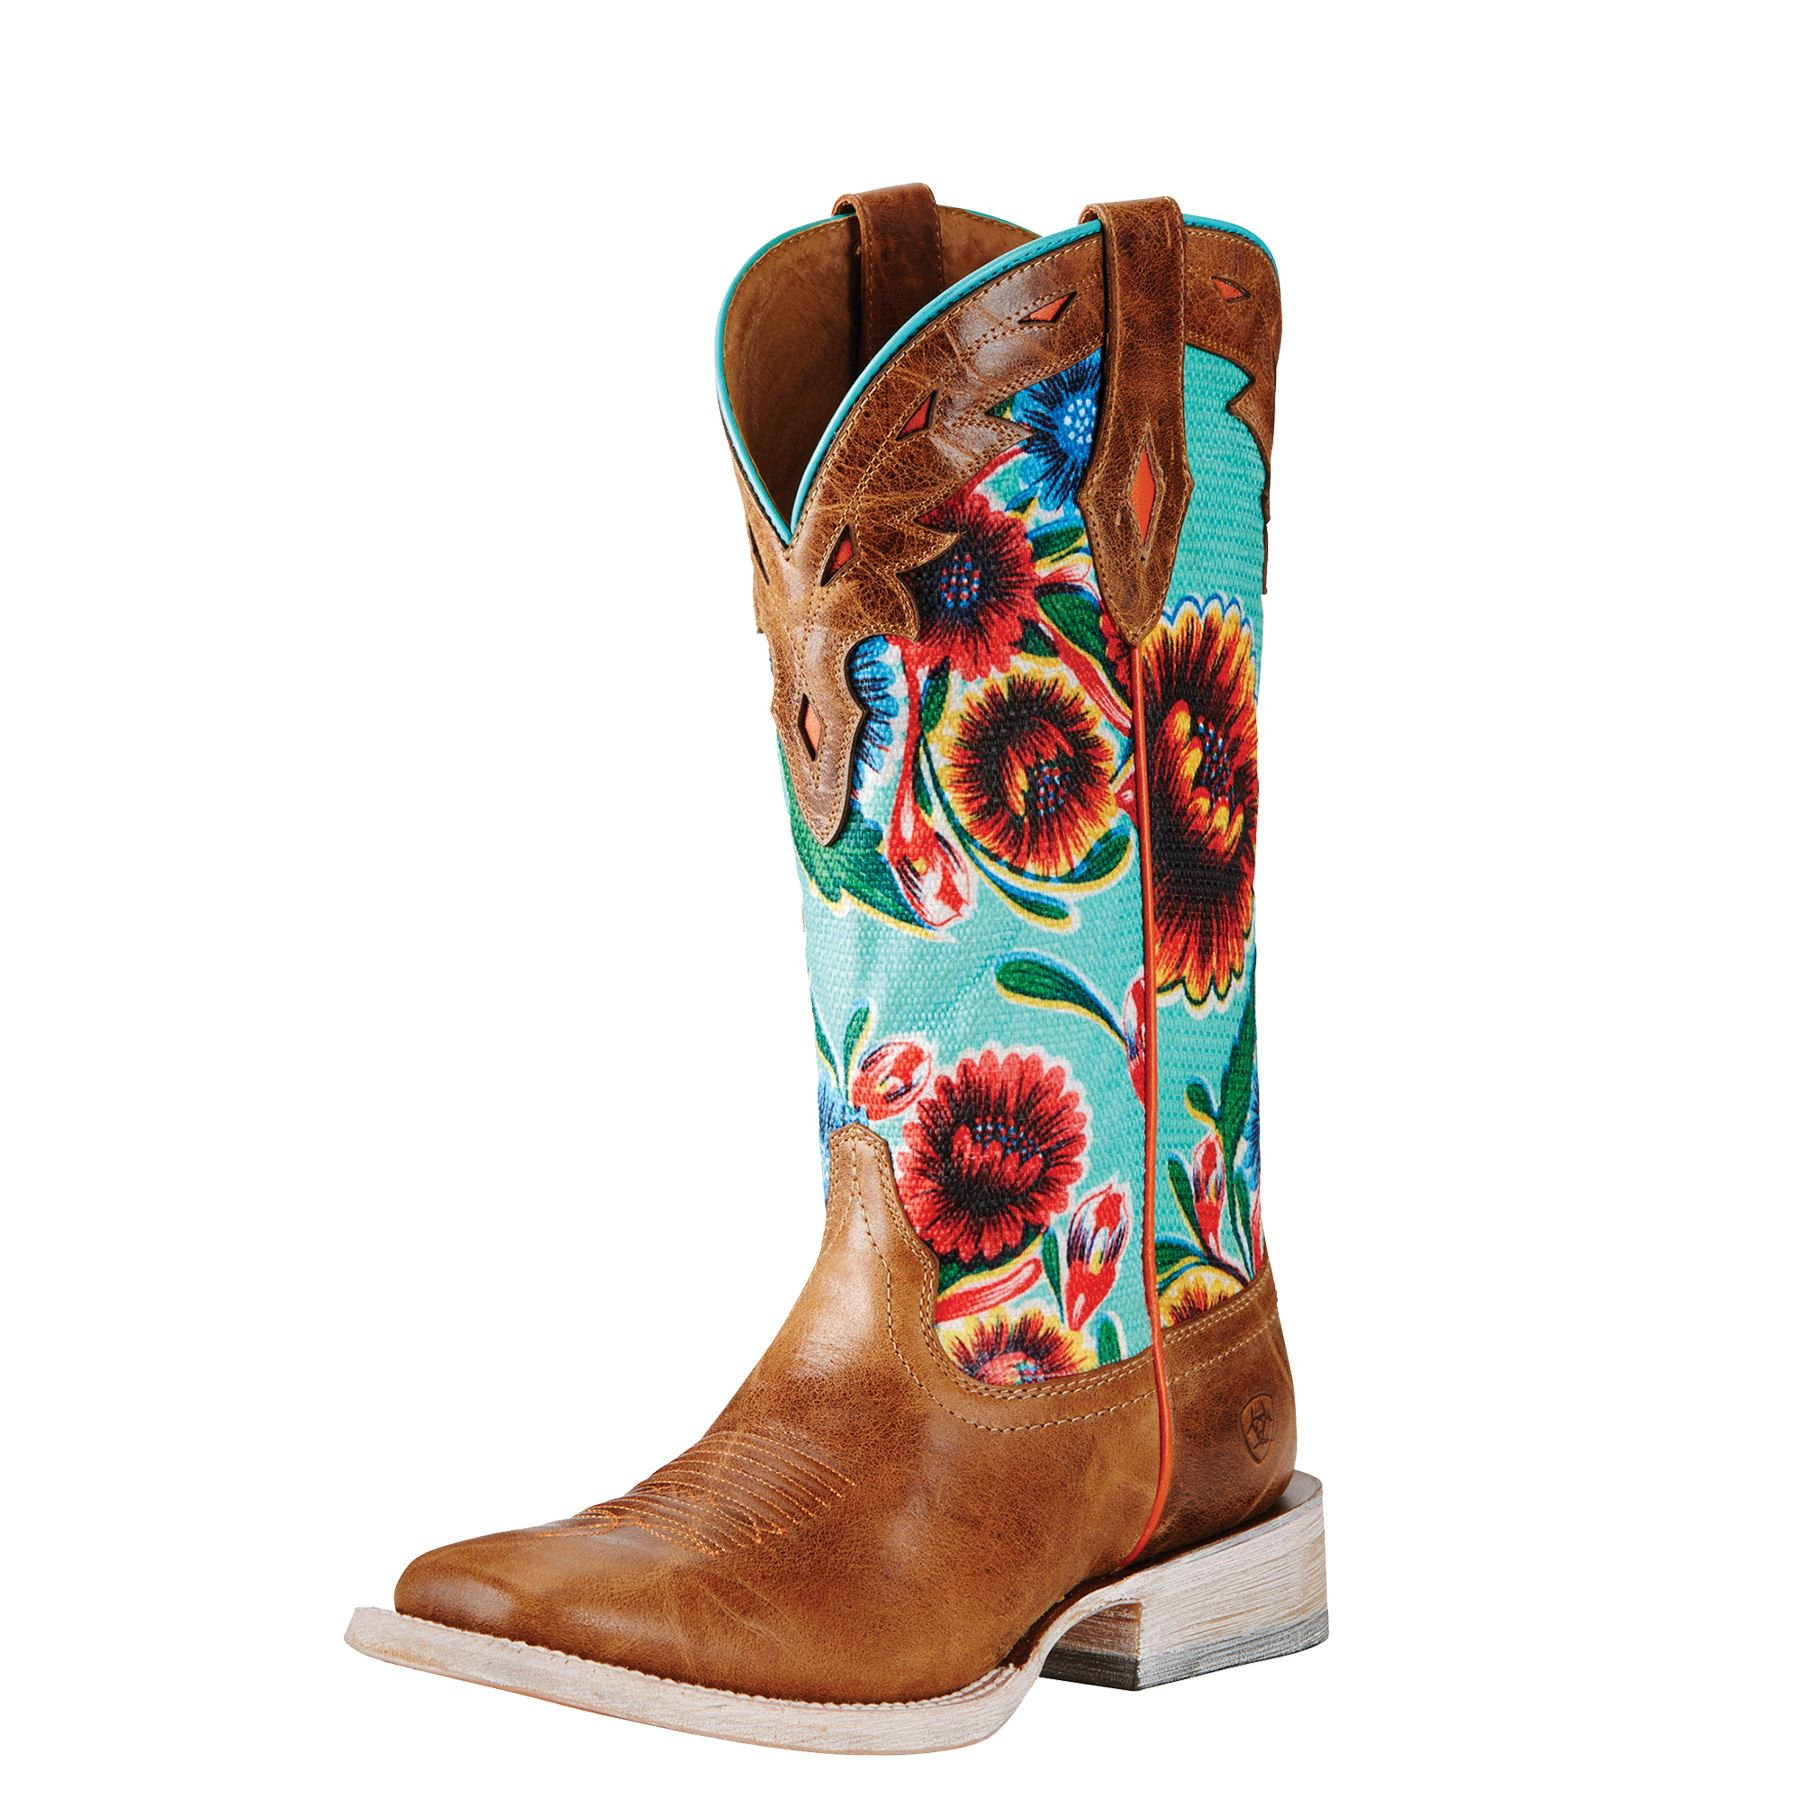 ecf6d95a8f4 Ariat Ladies Circuit Champion Floral Western Boots in Apparel Boots ...